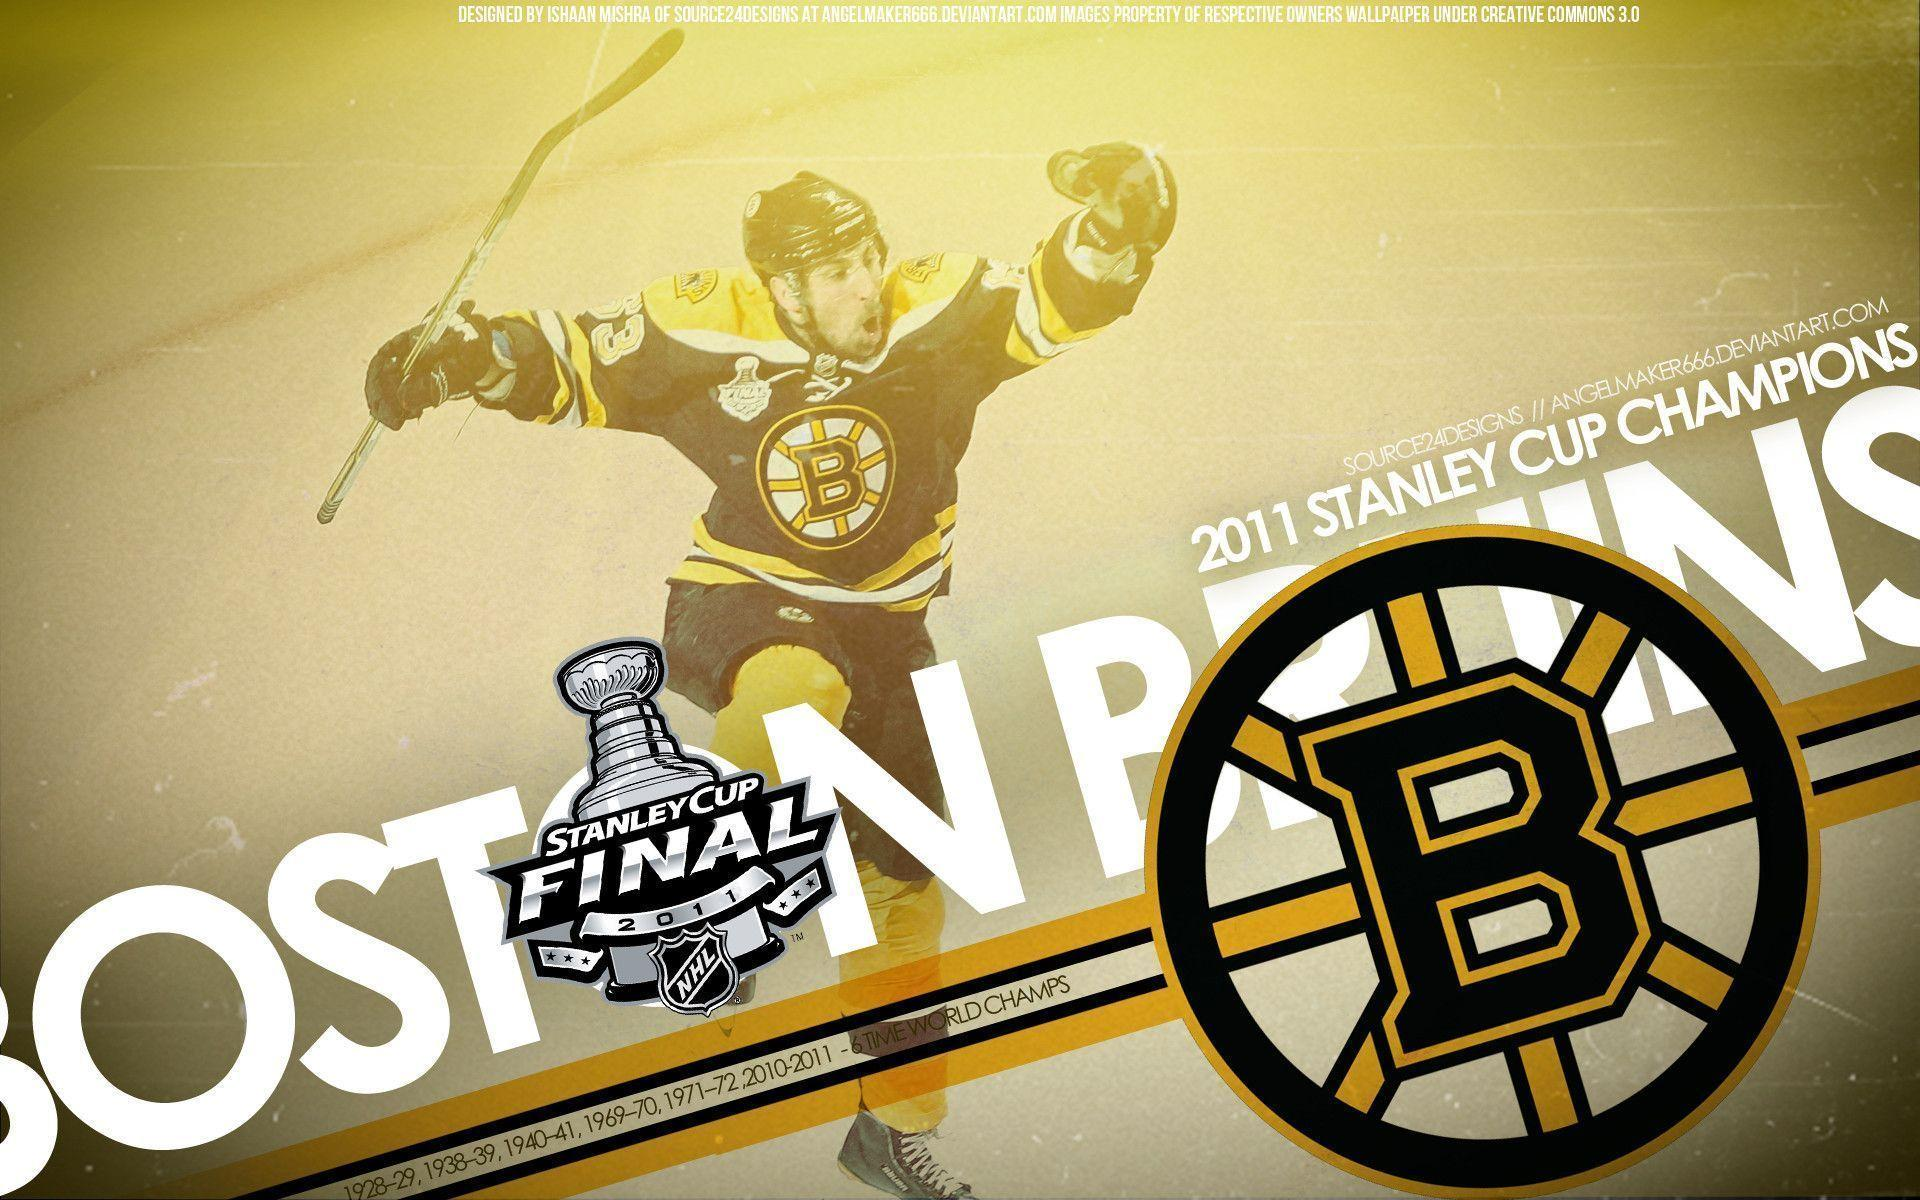 Boston Bruins HD wallpaper | Boston Bruins wallpapers